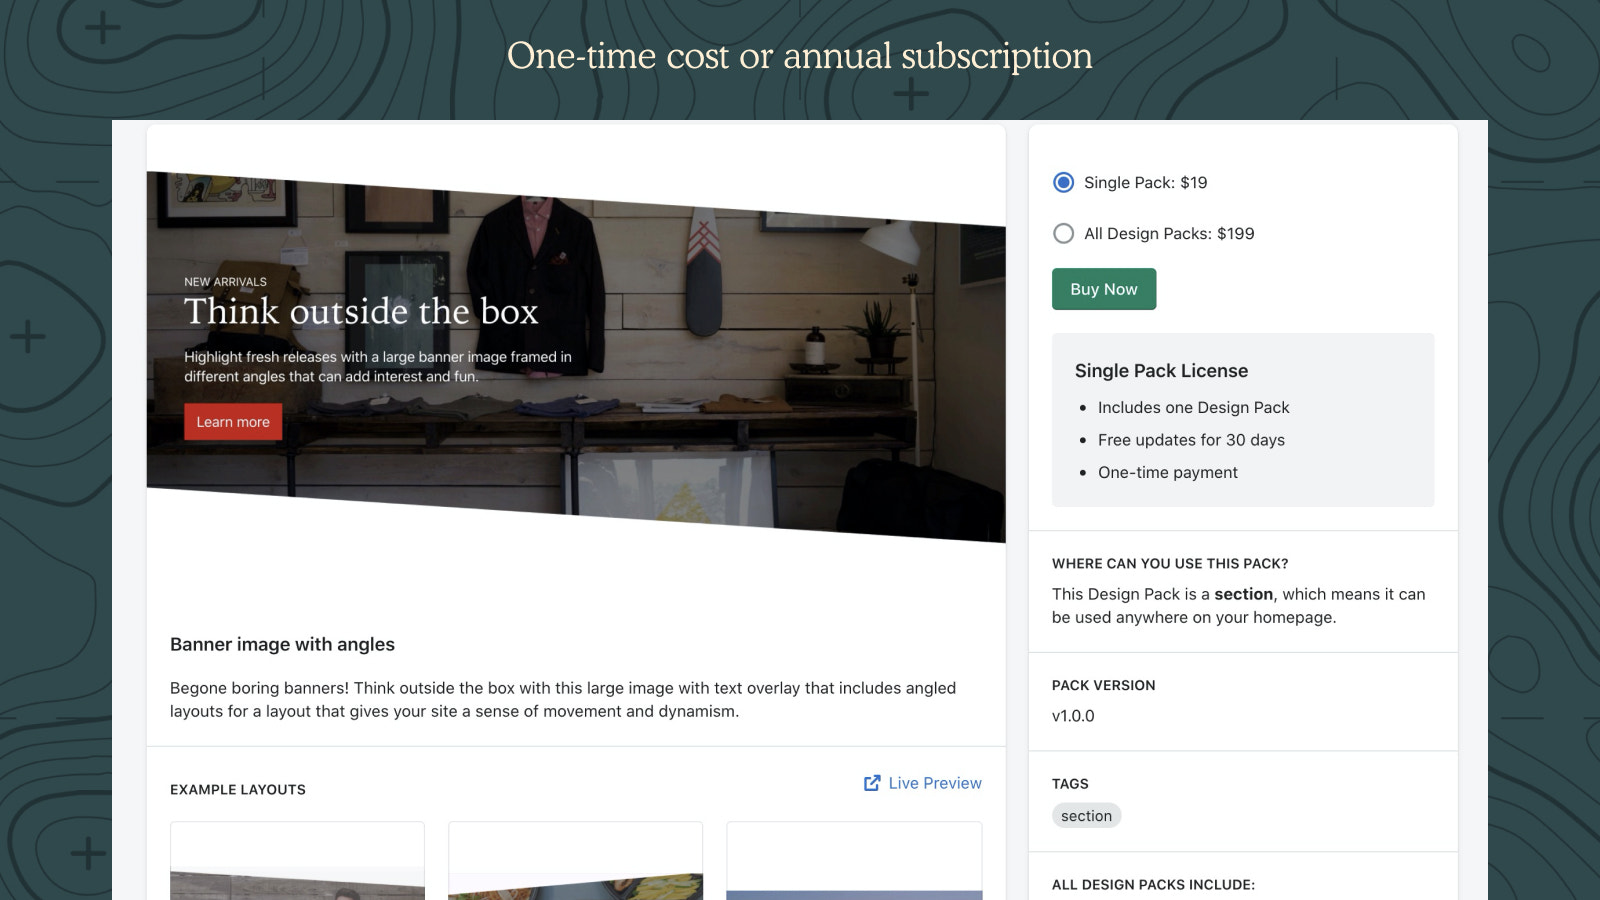 One time cost or annual subscription